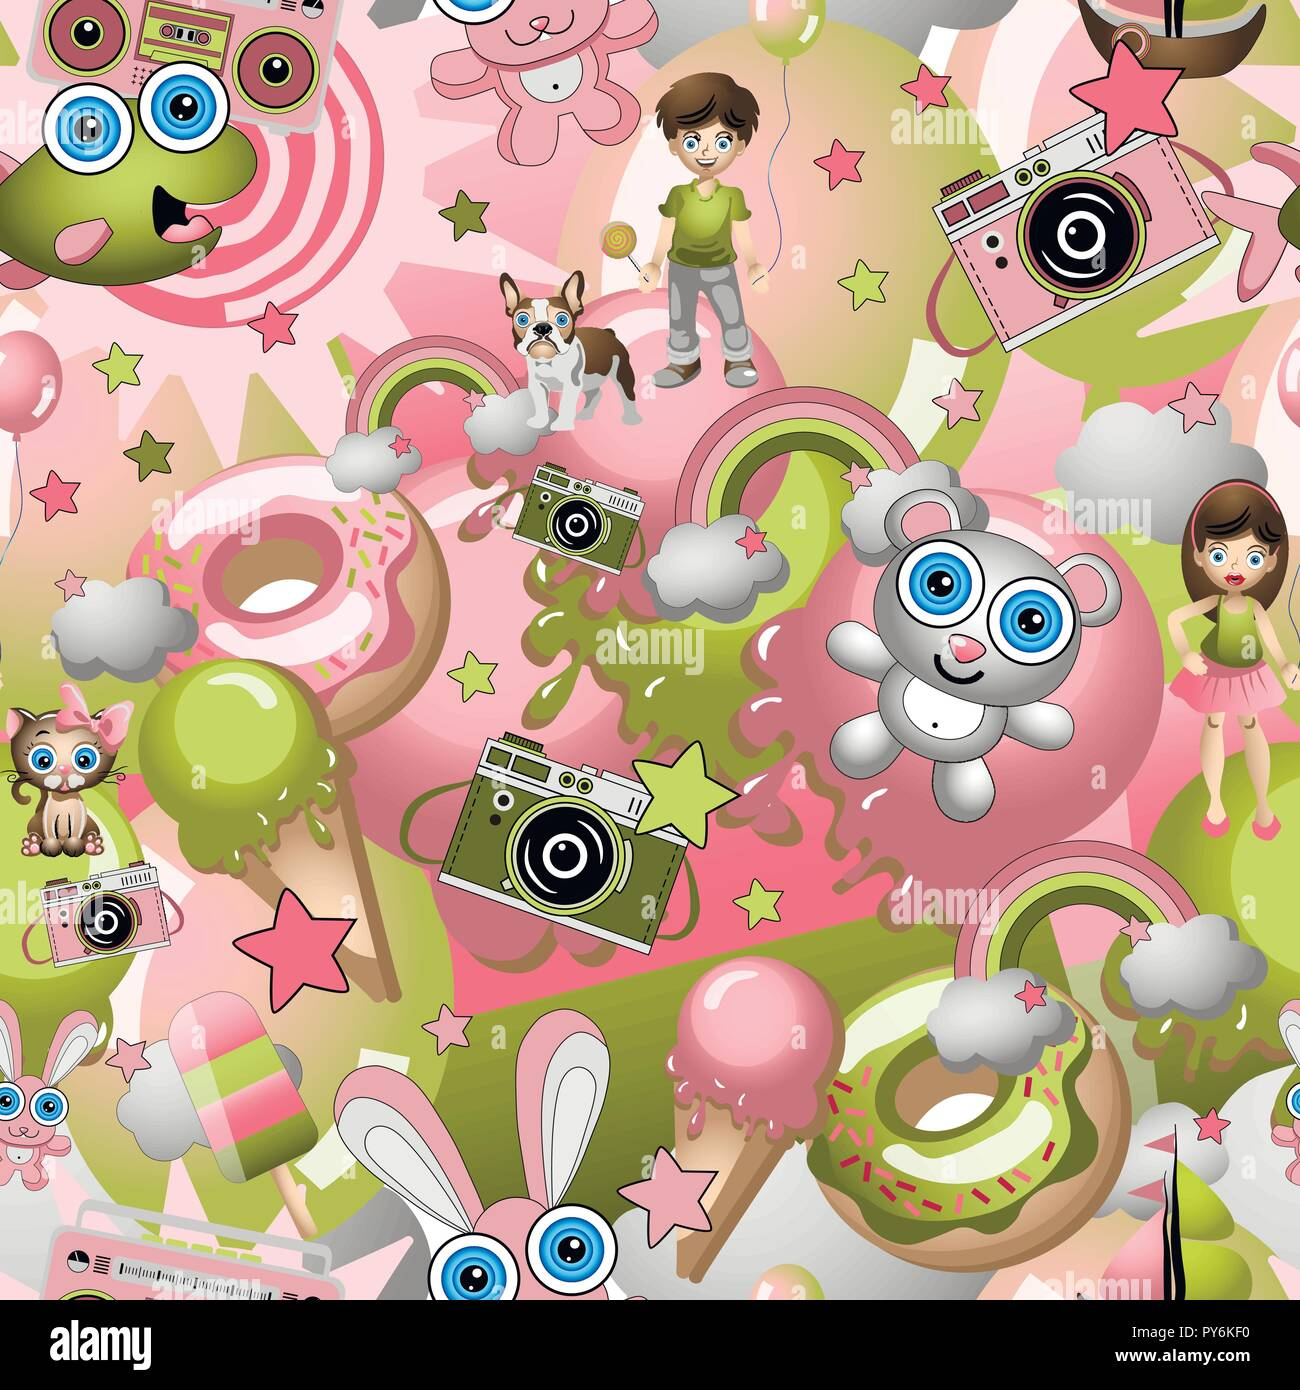 Seamless Pattern With Childish Cartoon Style Elements Boy And Girl